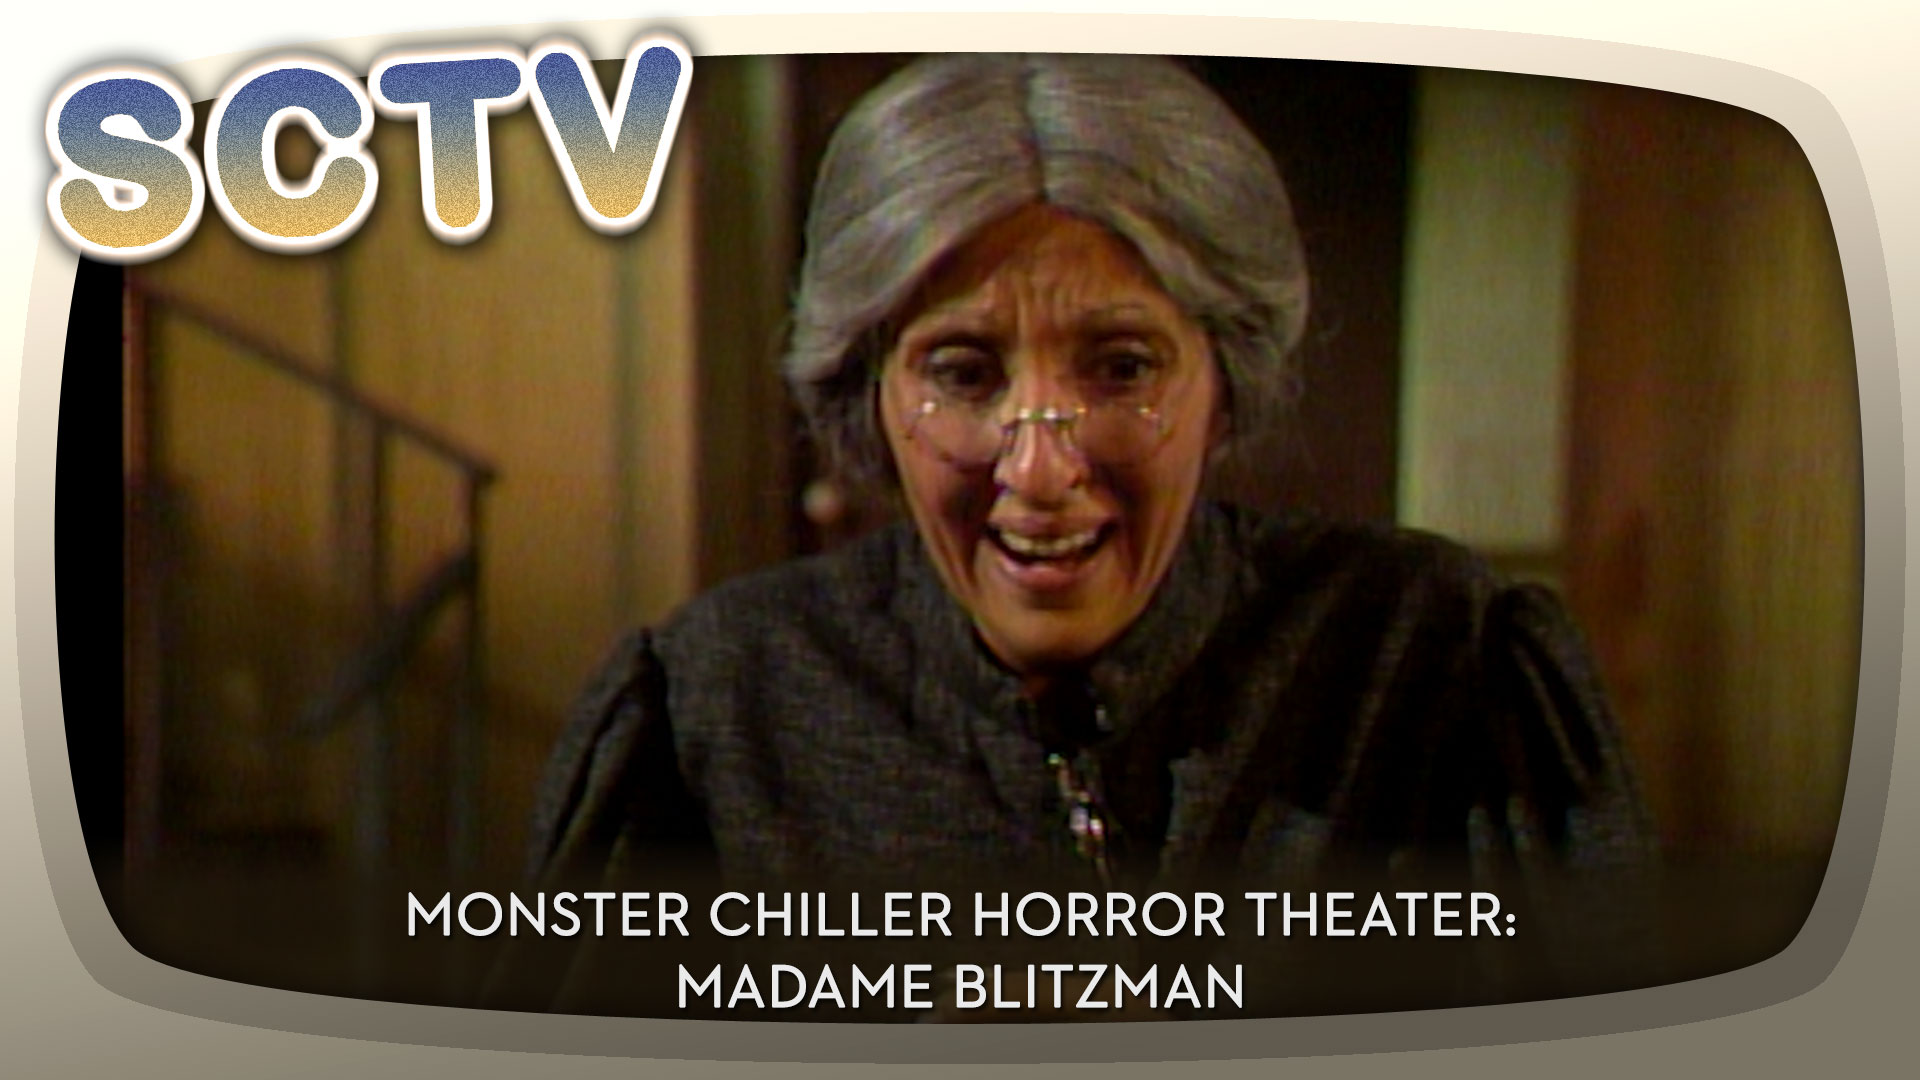 SCTV - Monster Chiller Horror Theater: Madame Blitzman